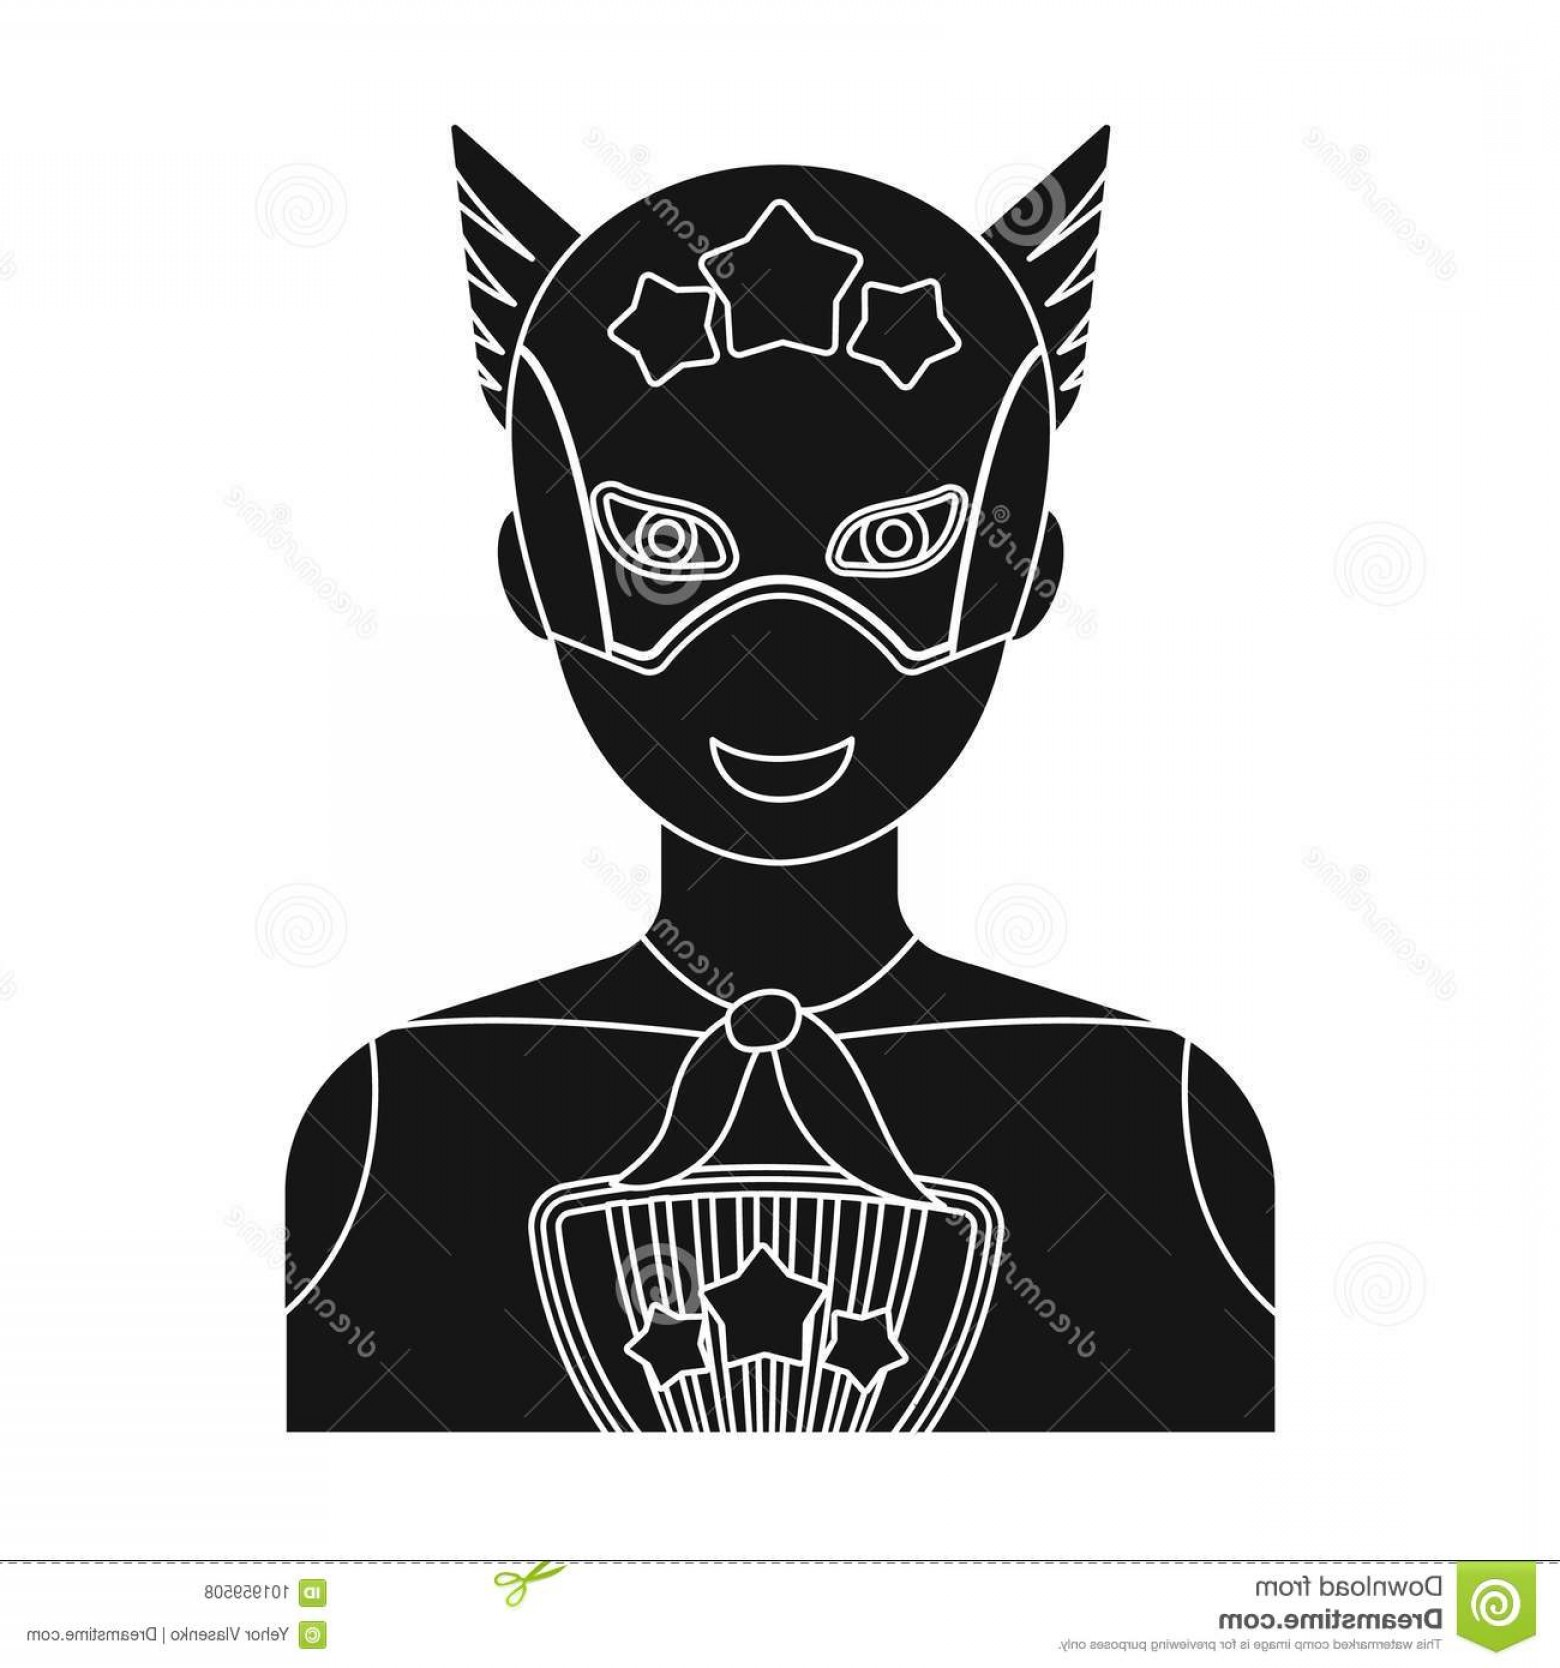 Superman Black And White Vector: Superman Single Icon Black Style Vector Symbol Stock Illustration Web Image